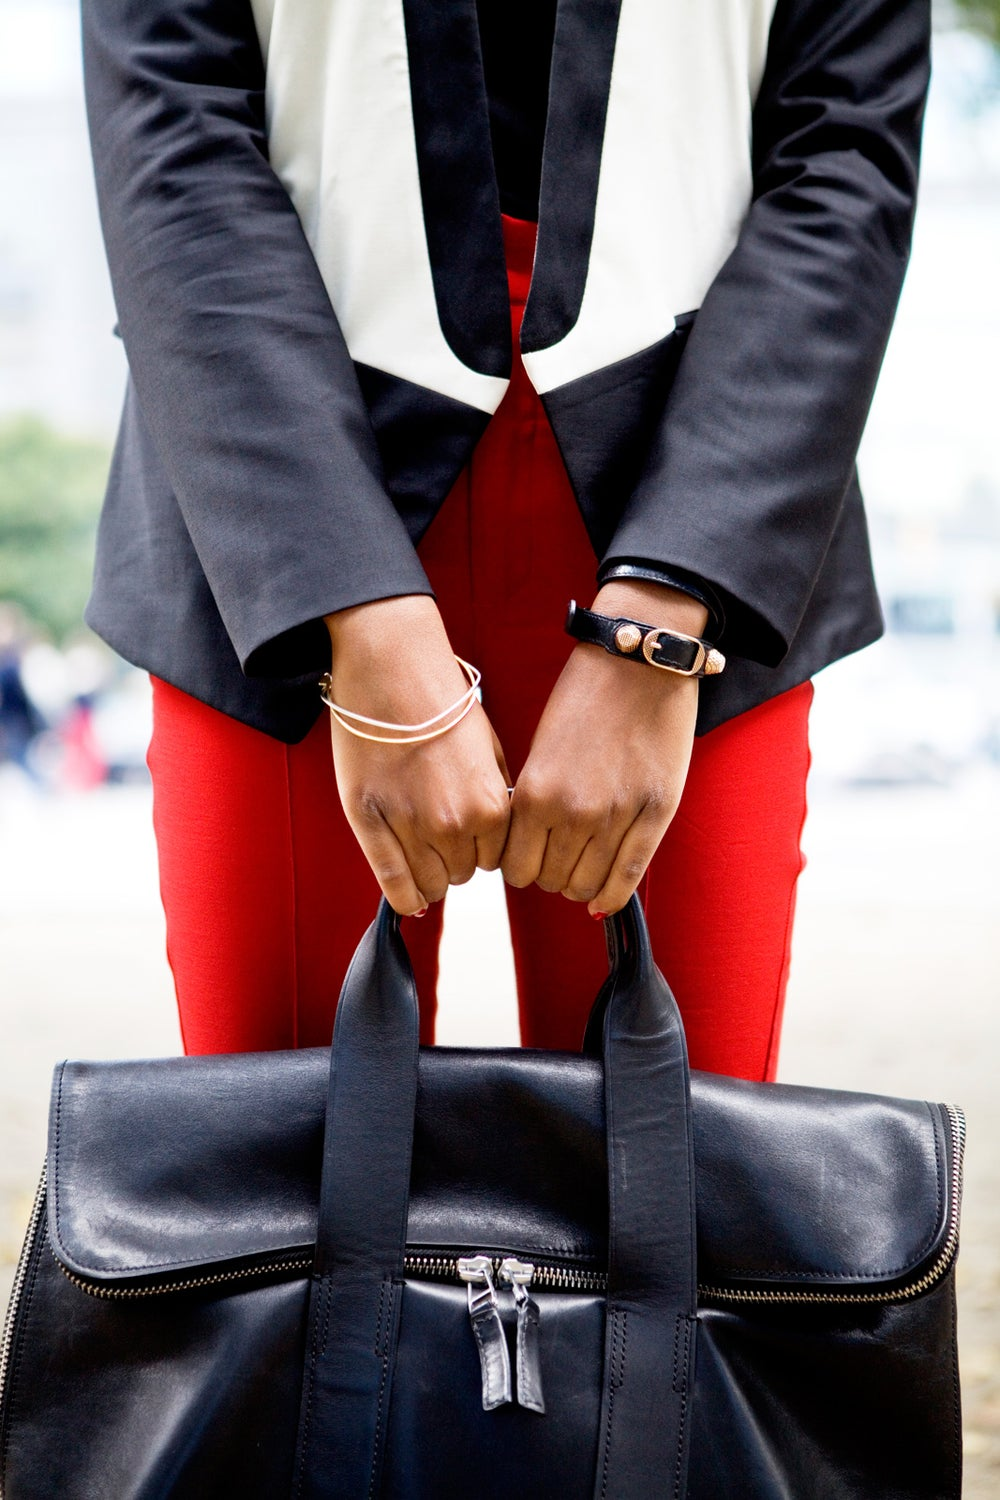 Check out that 3.1 Phillip Lim 31 Hour bag. Chrissy wears Balenciaga and Surface to Air bracelets.